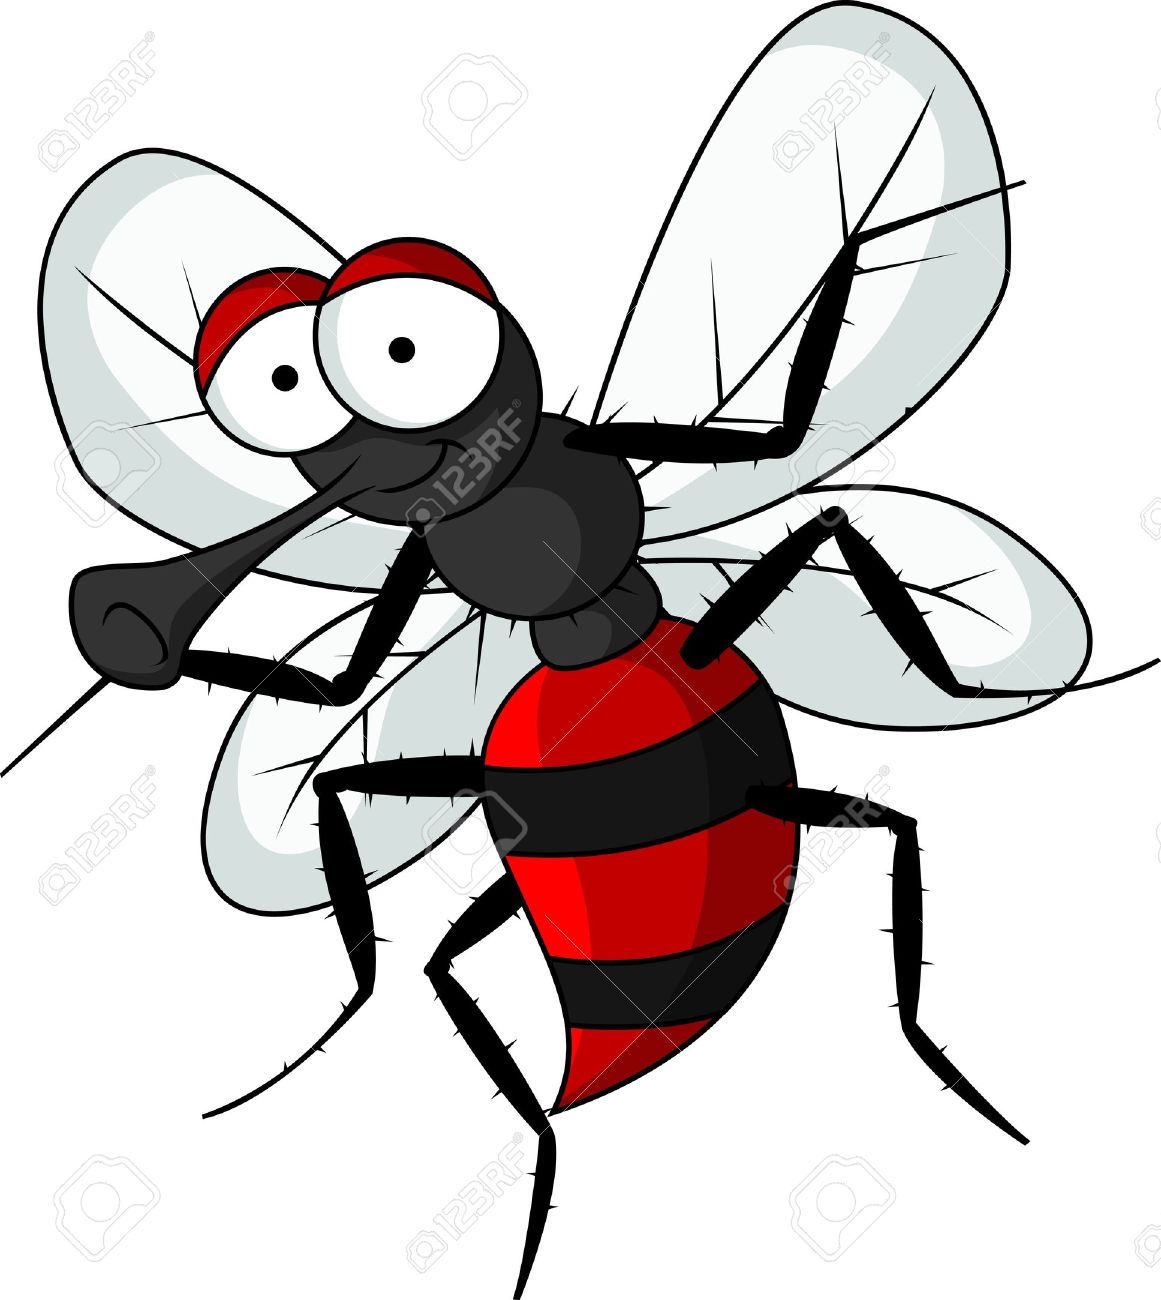 mosquito cartoon Stock Vector - 14691473